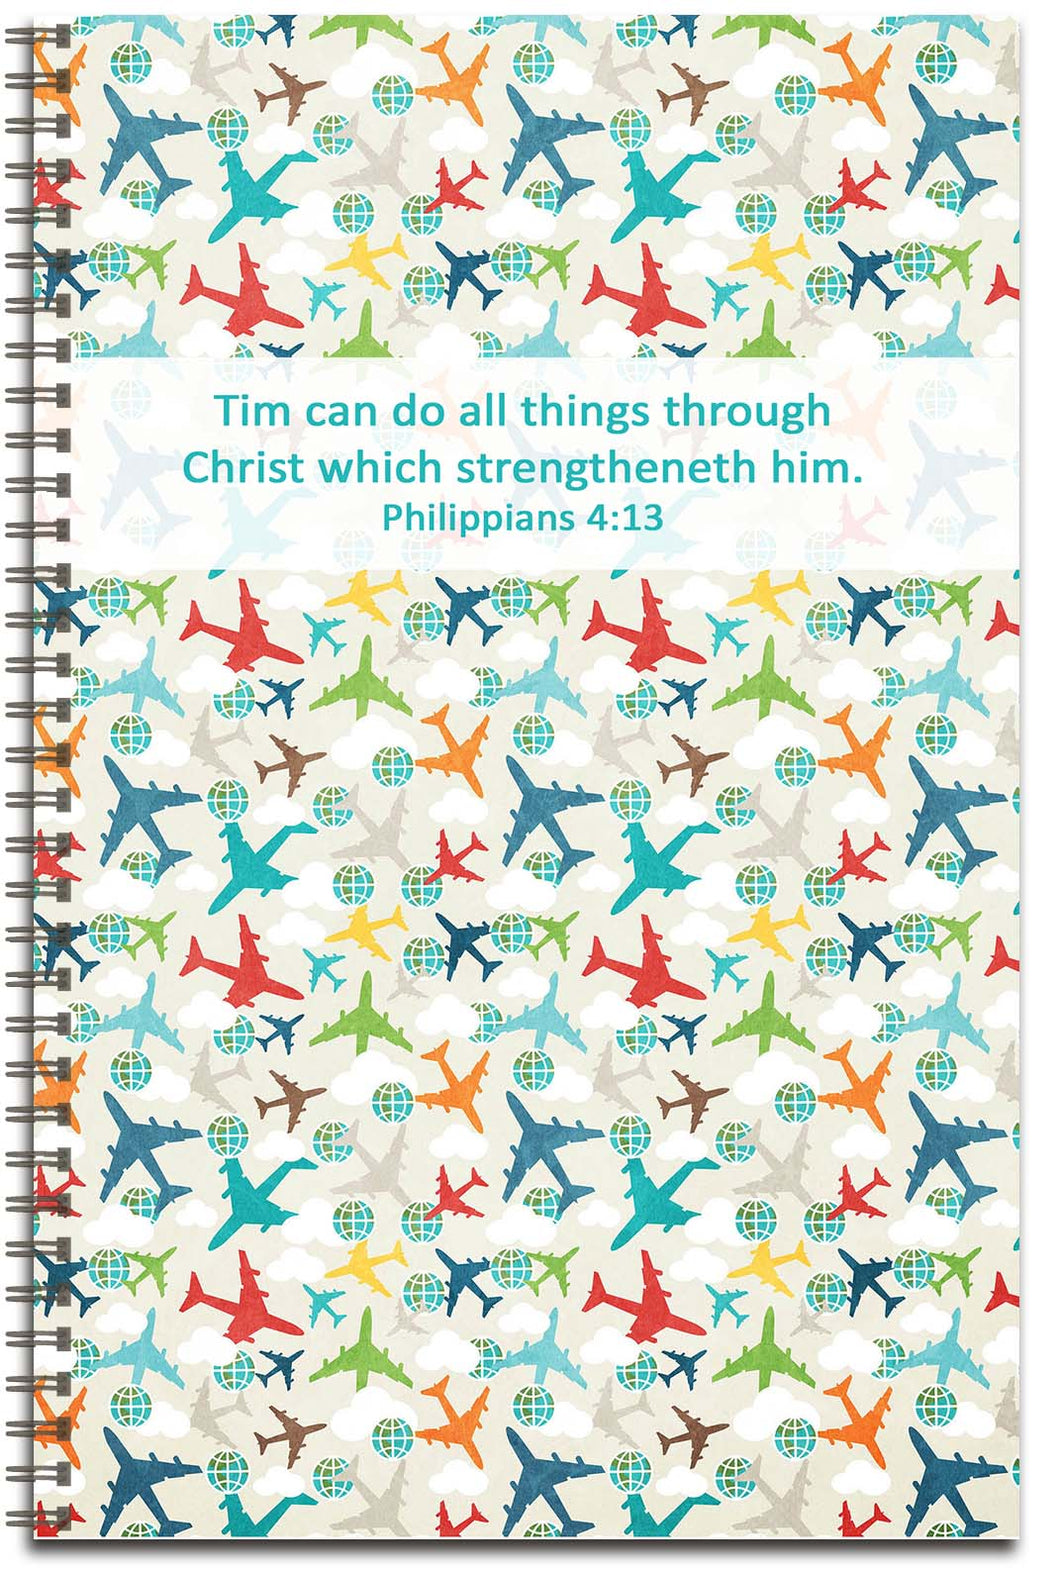 Airplane Travel - Personalized Journal